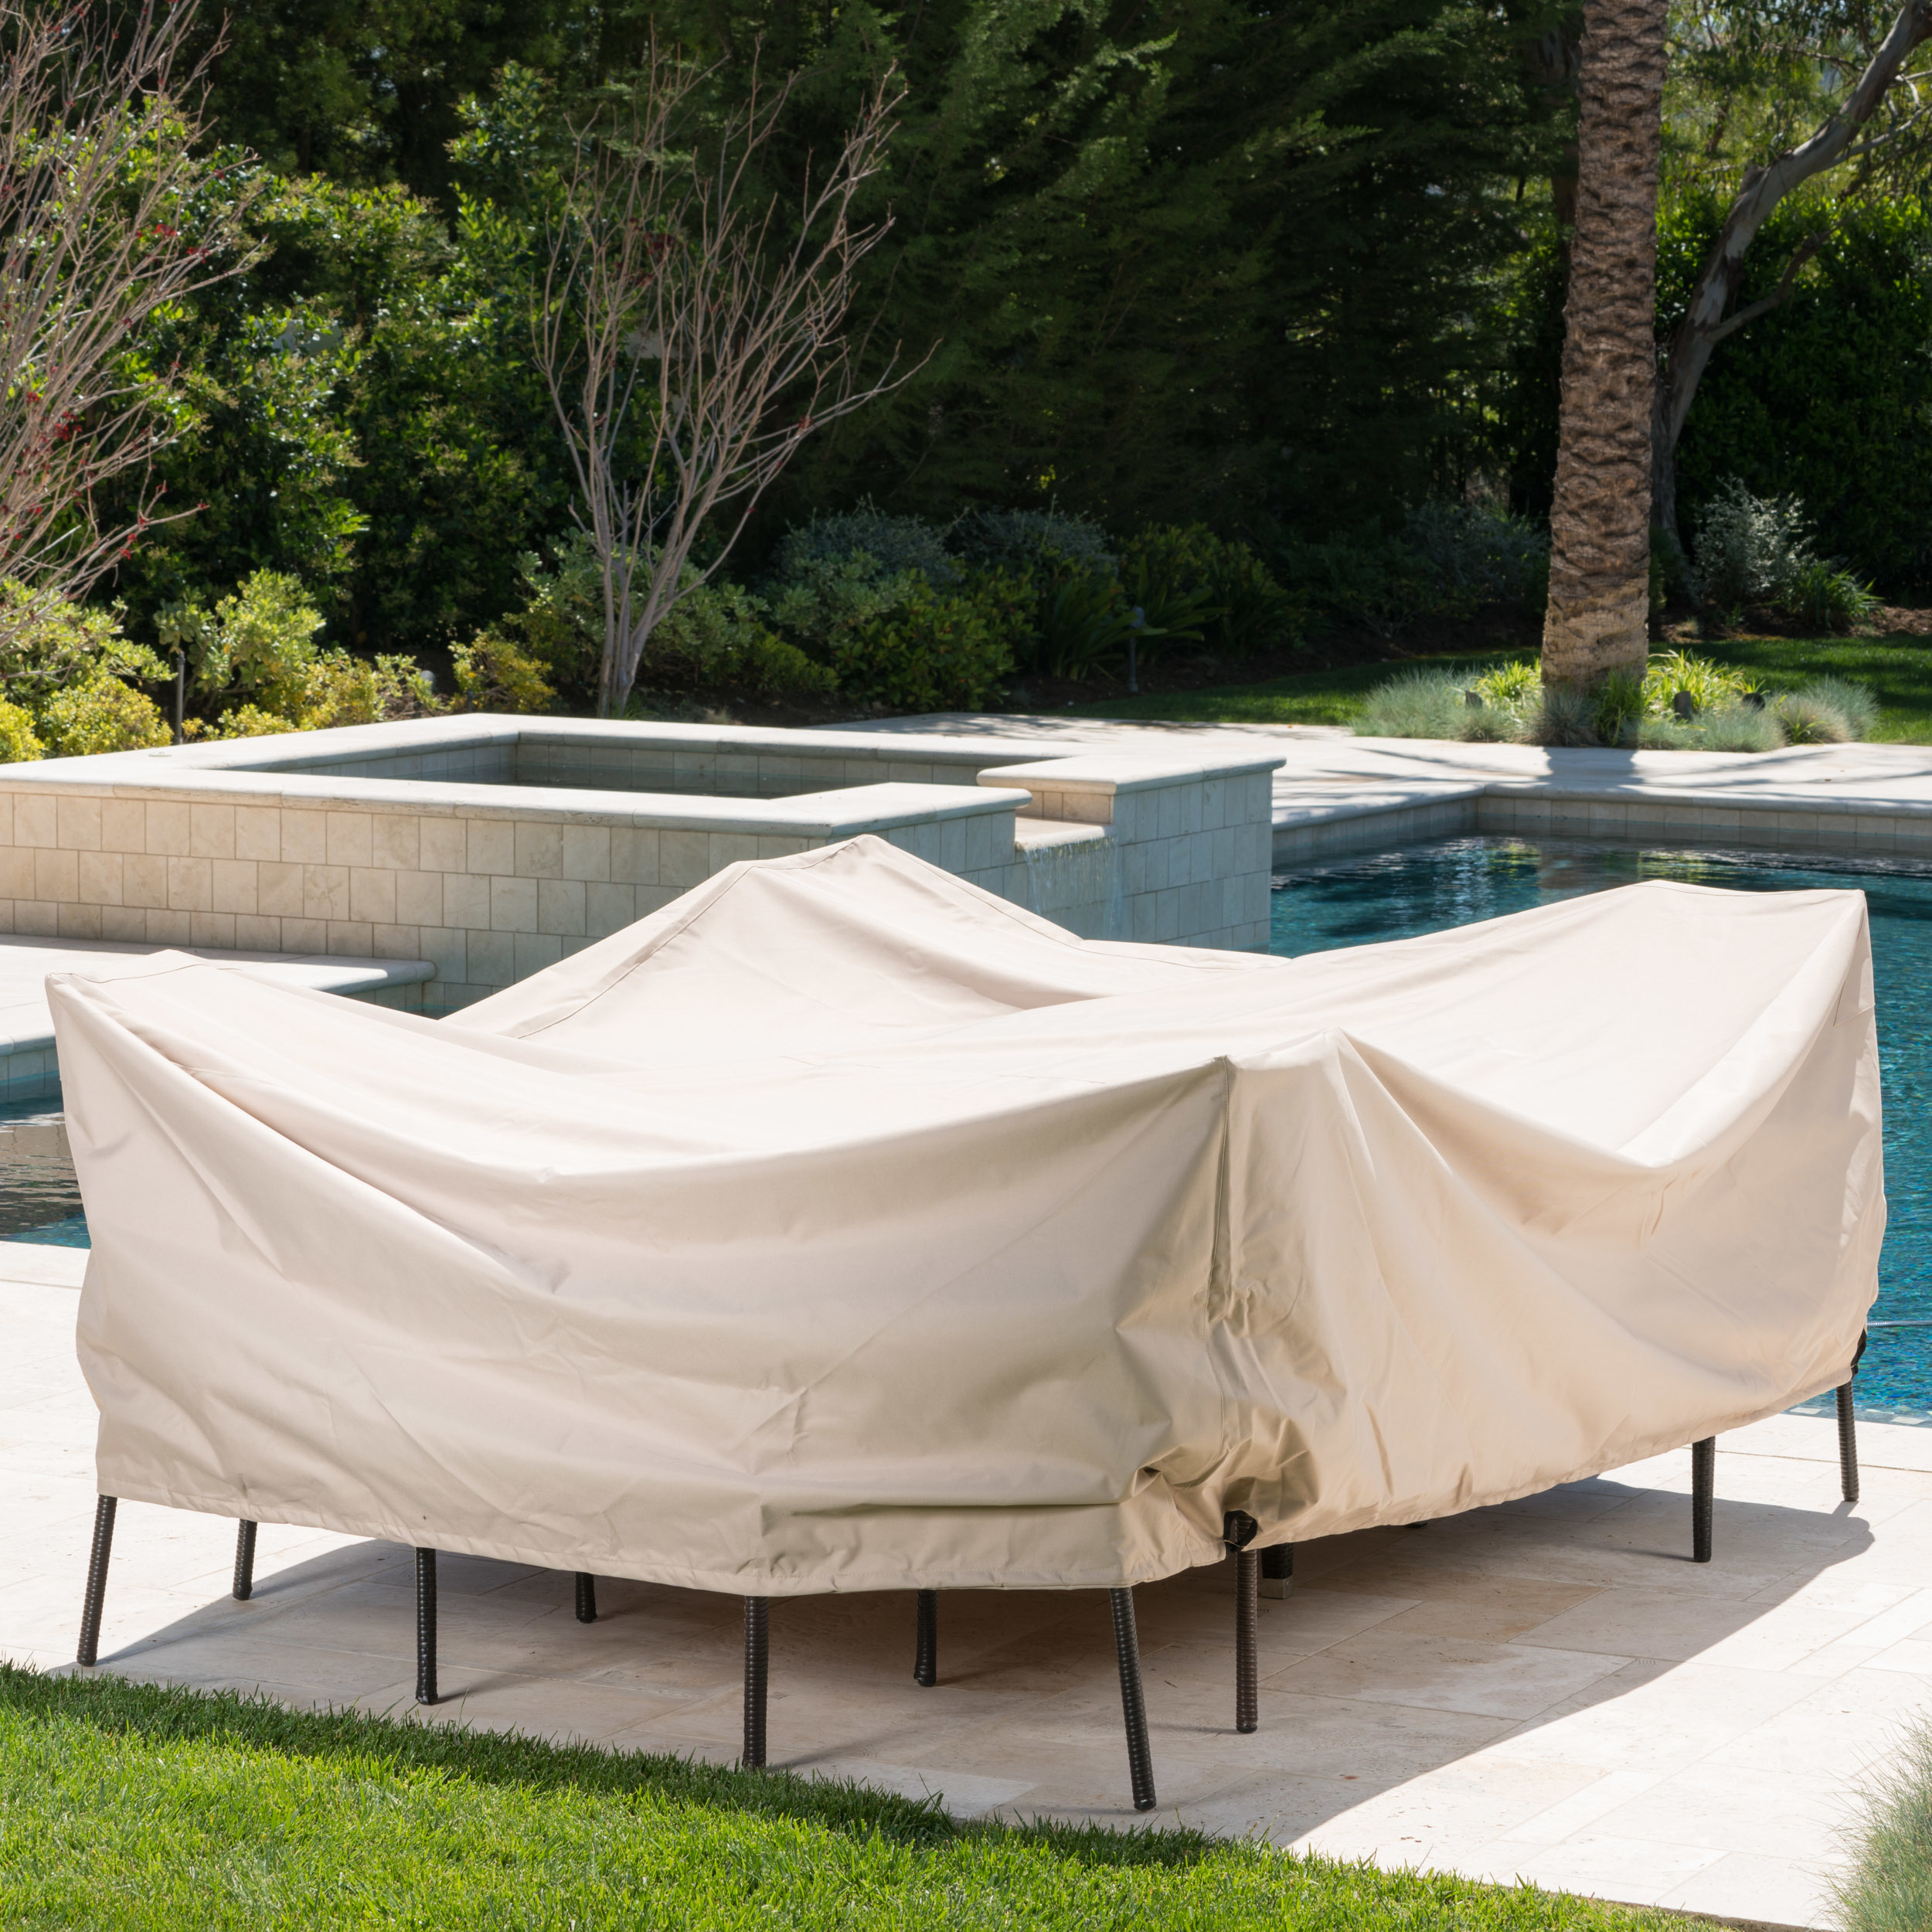 Coverall Outdoor Beige Waterproof Fabric Dining Set Cover